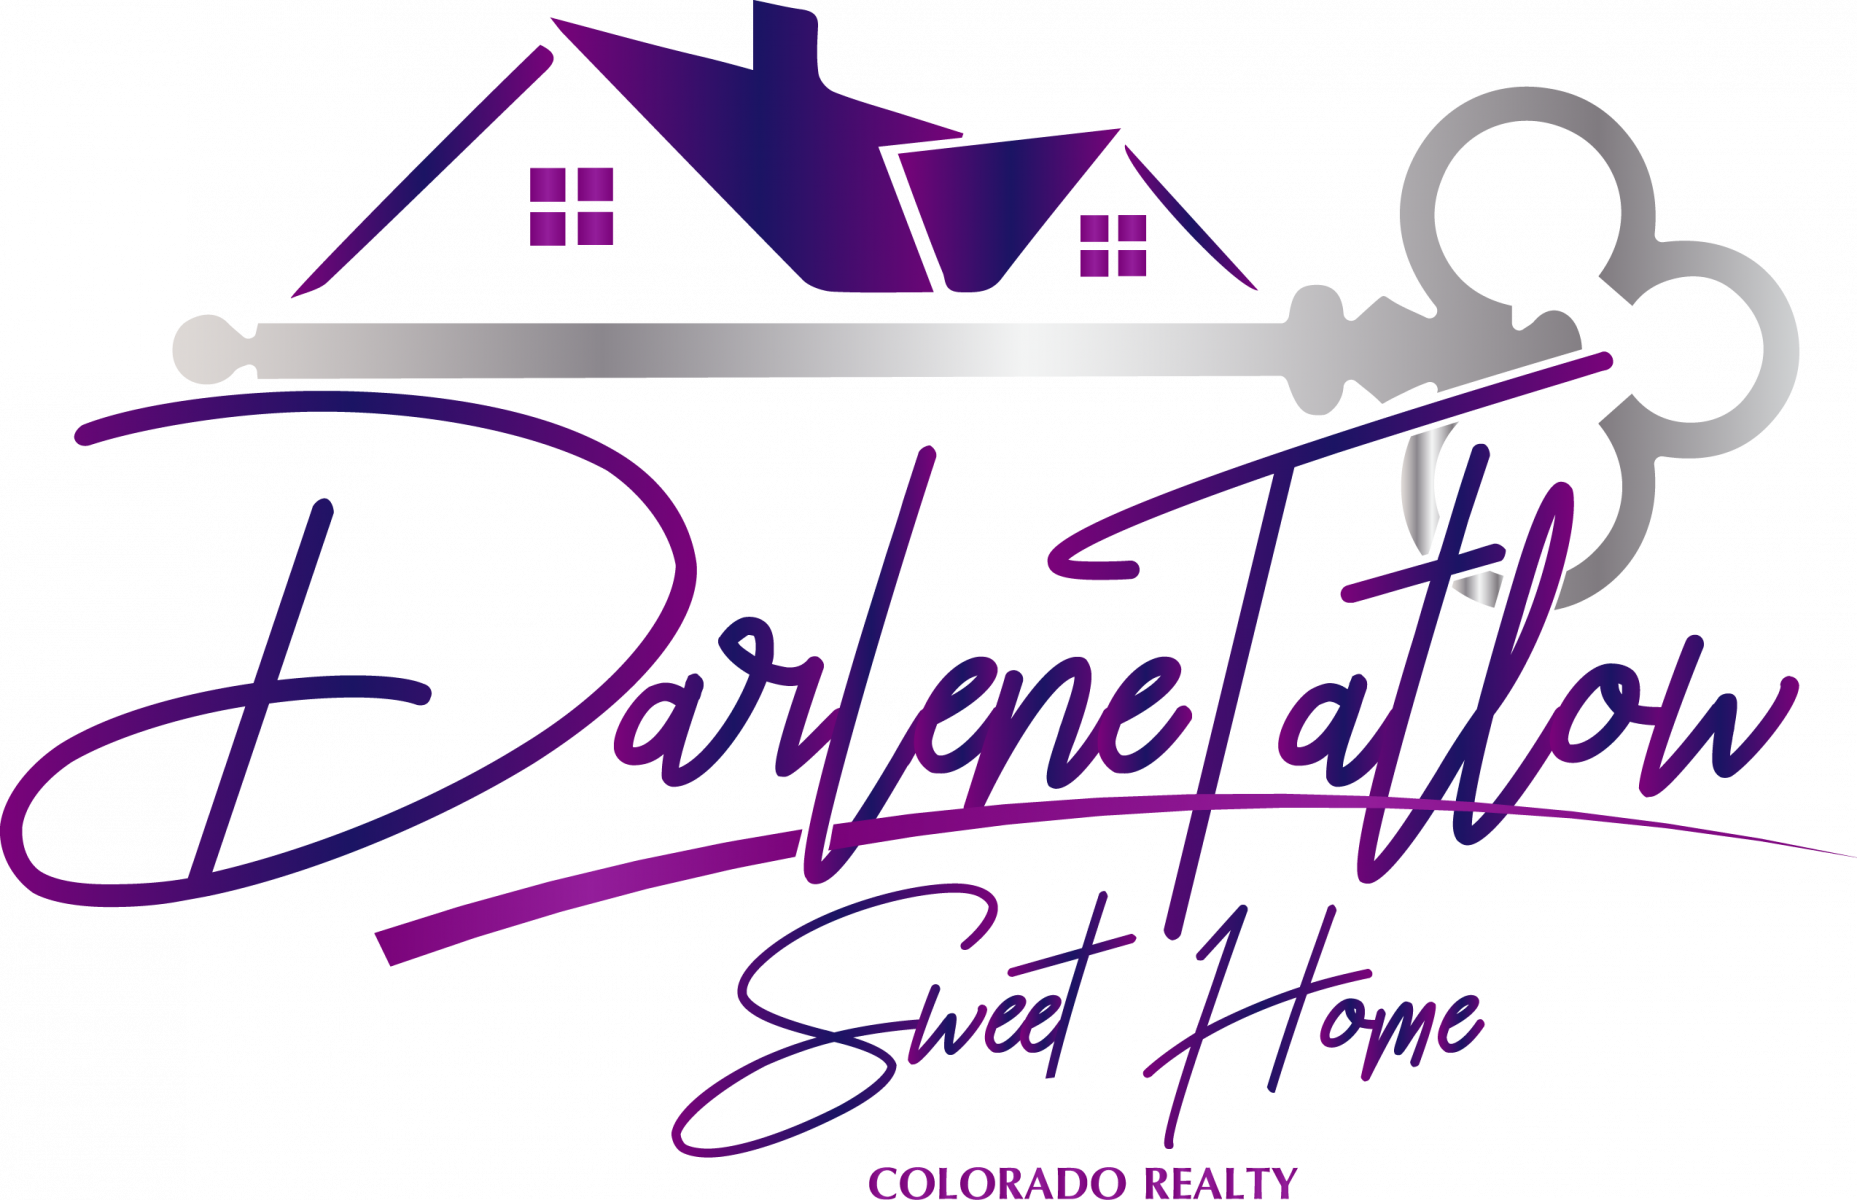 Sweet Home Colorado Realty logo